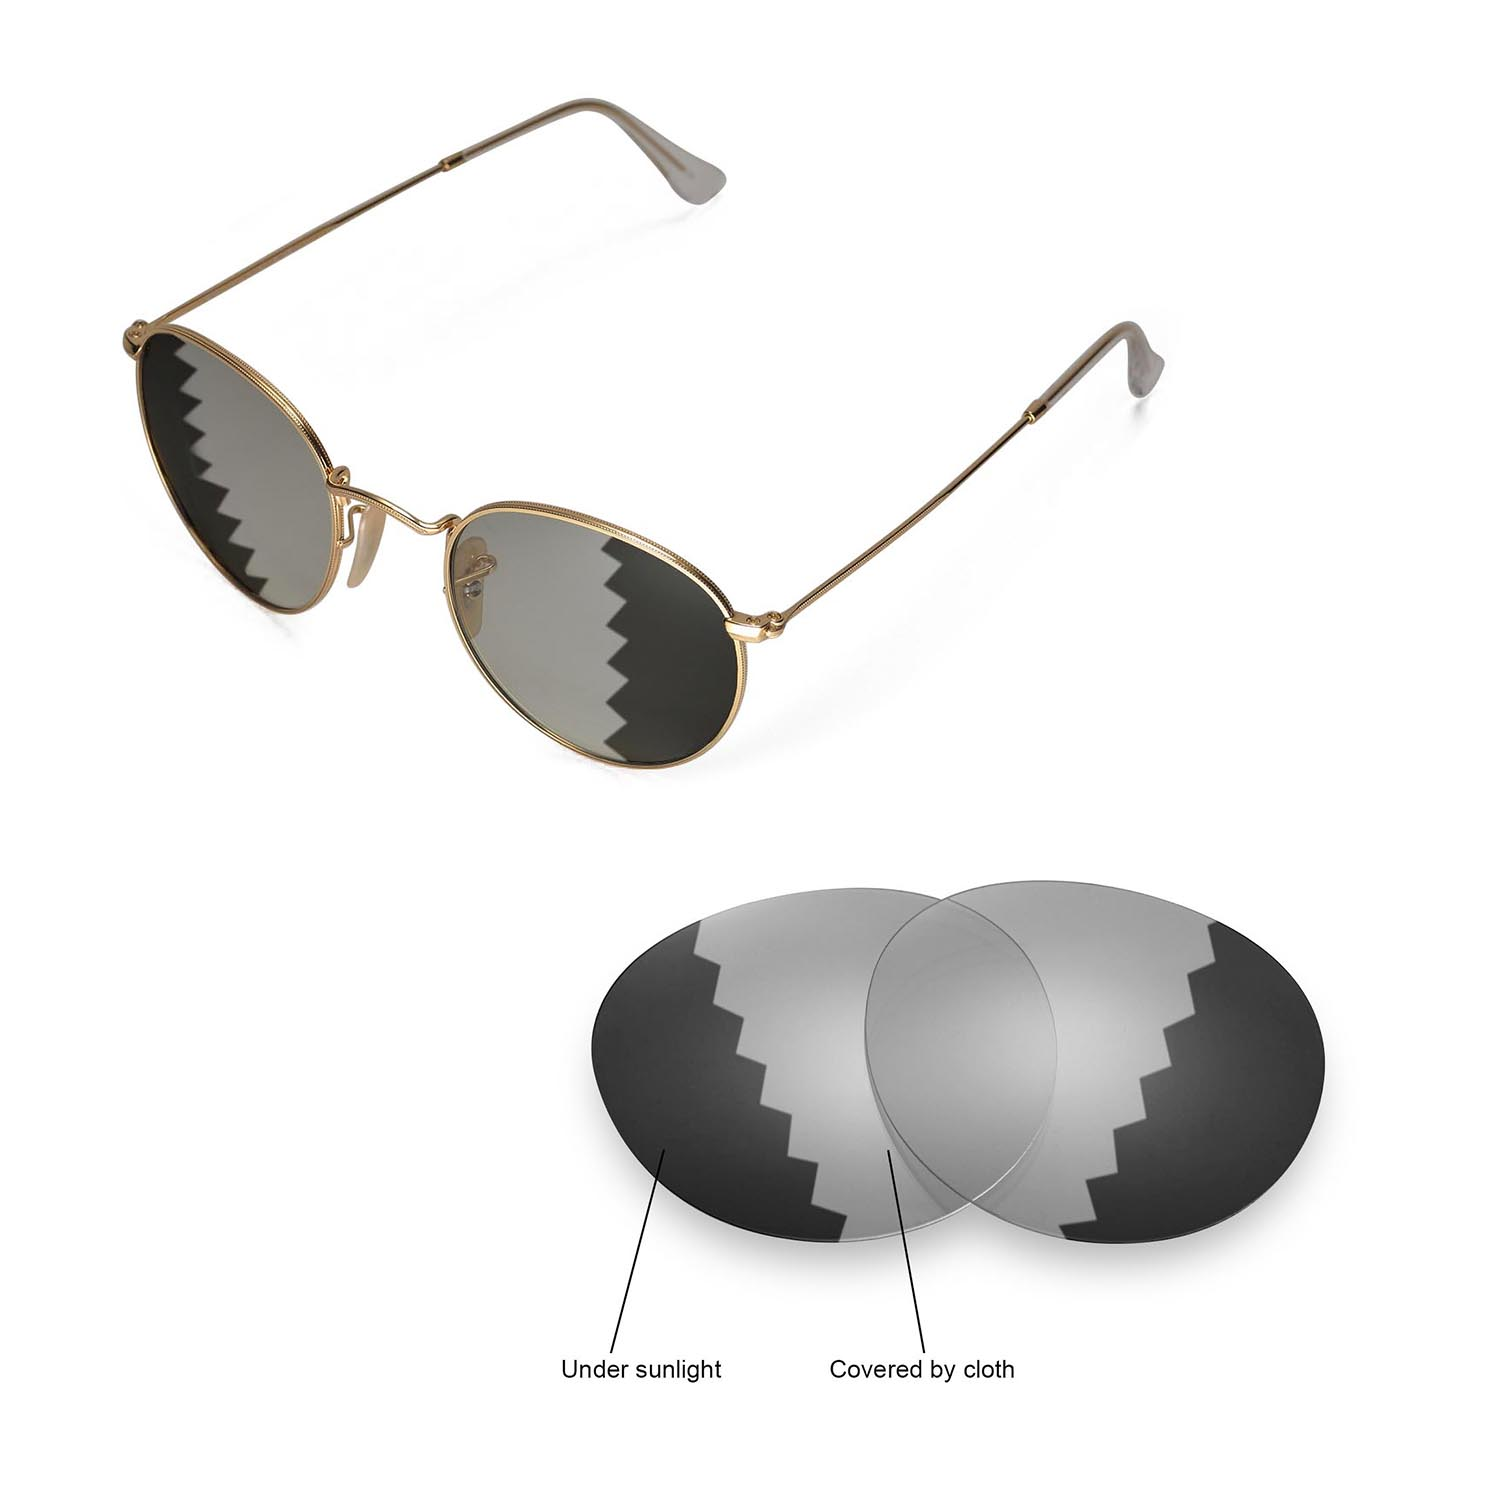 35b184e1d81 Details about Walleva Lenses for Ray-Ban Round Metal RB3447 50mm  Sunglasses-Multiple Options